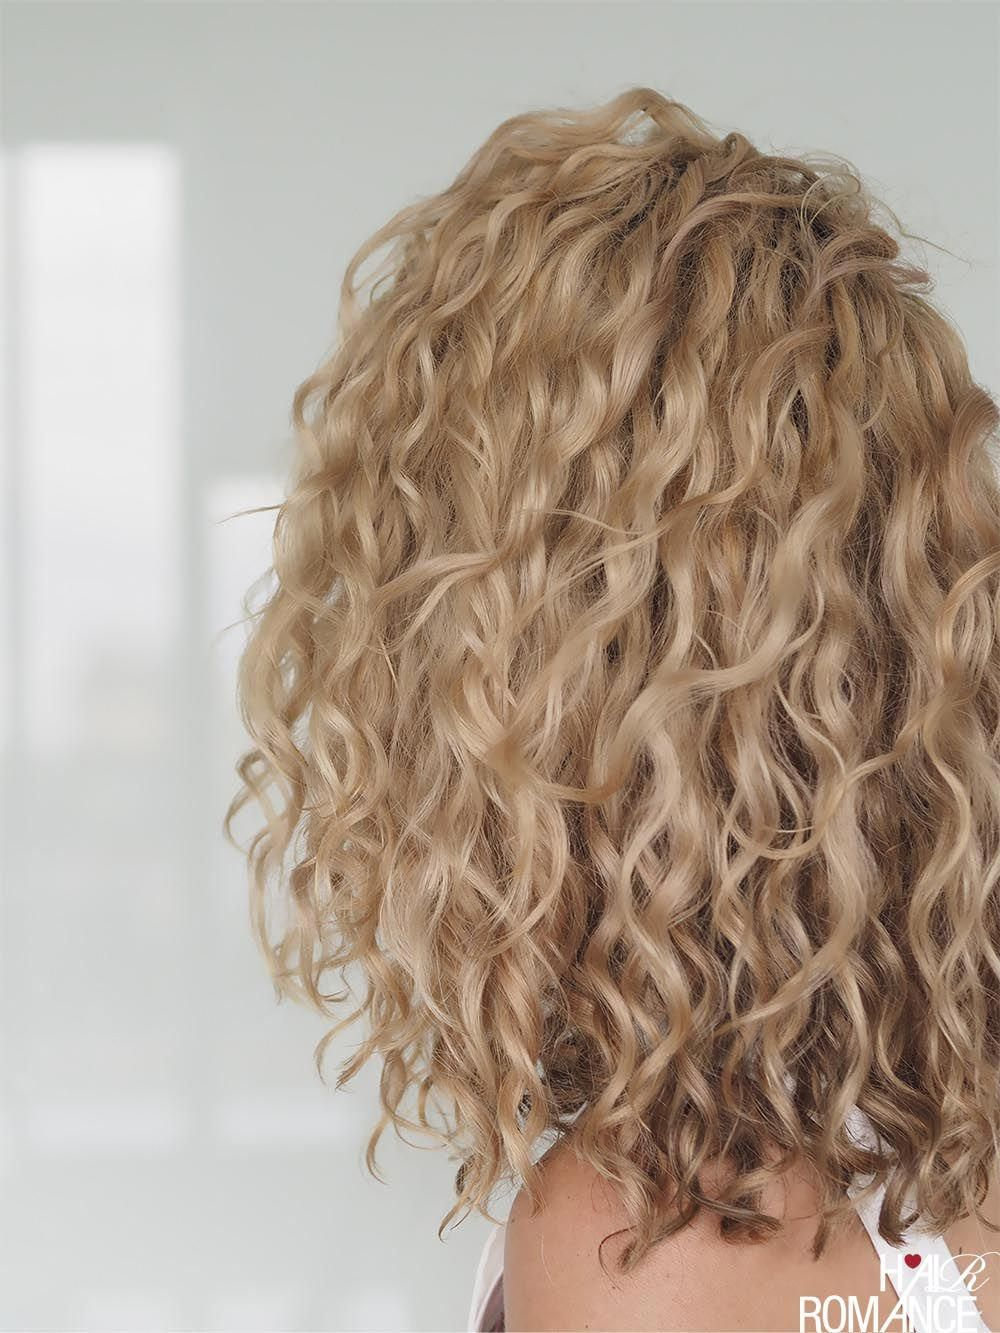 The Best Haircuts For Curly Hair Hair Romance Haircuts For Curly Hair Curly Hair Styles Curly Hair Styles Naturally